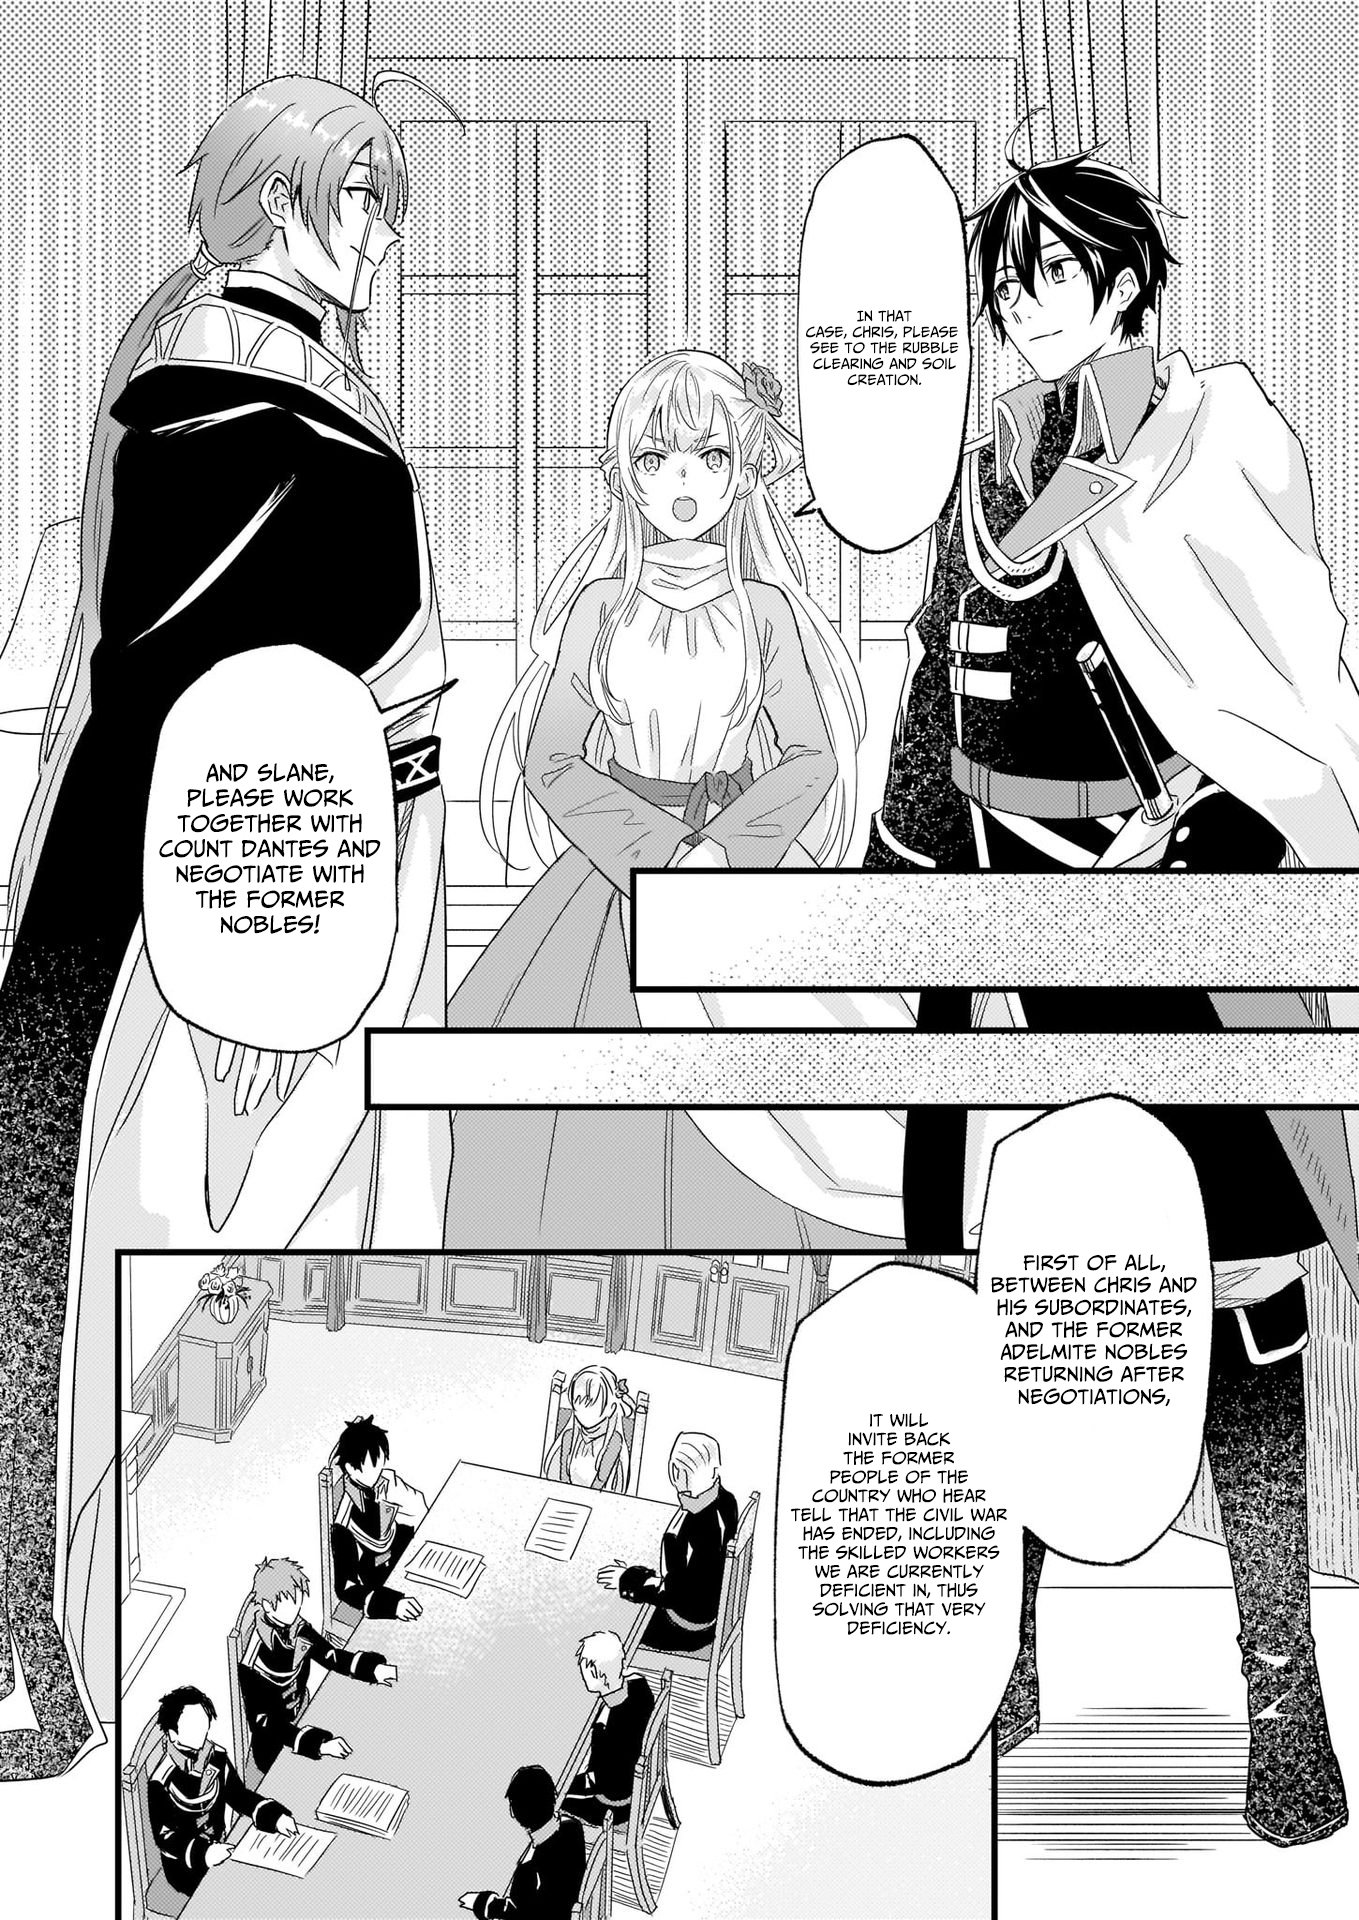 Manga I was Told to Relinquish My Fiance to My Little Sister, and the Greatest Dragon Took a Liking to Me and Unbelievably Took Over the Kingdom - Chapter 10 Page 20